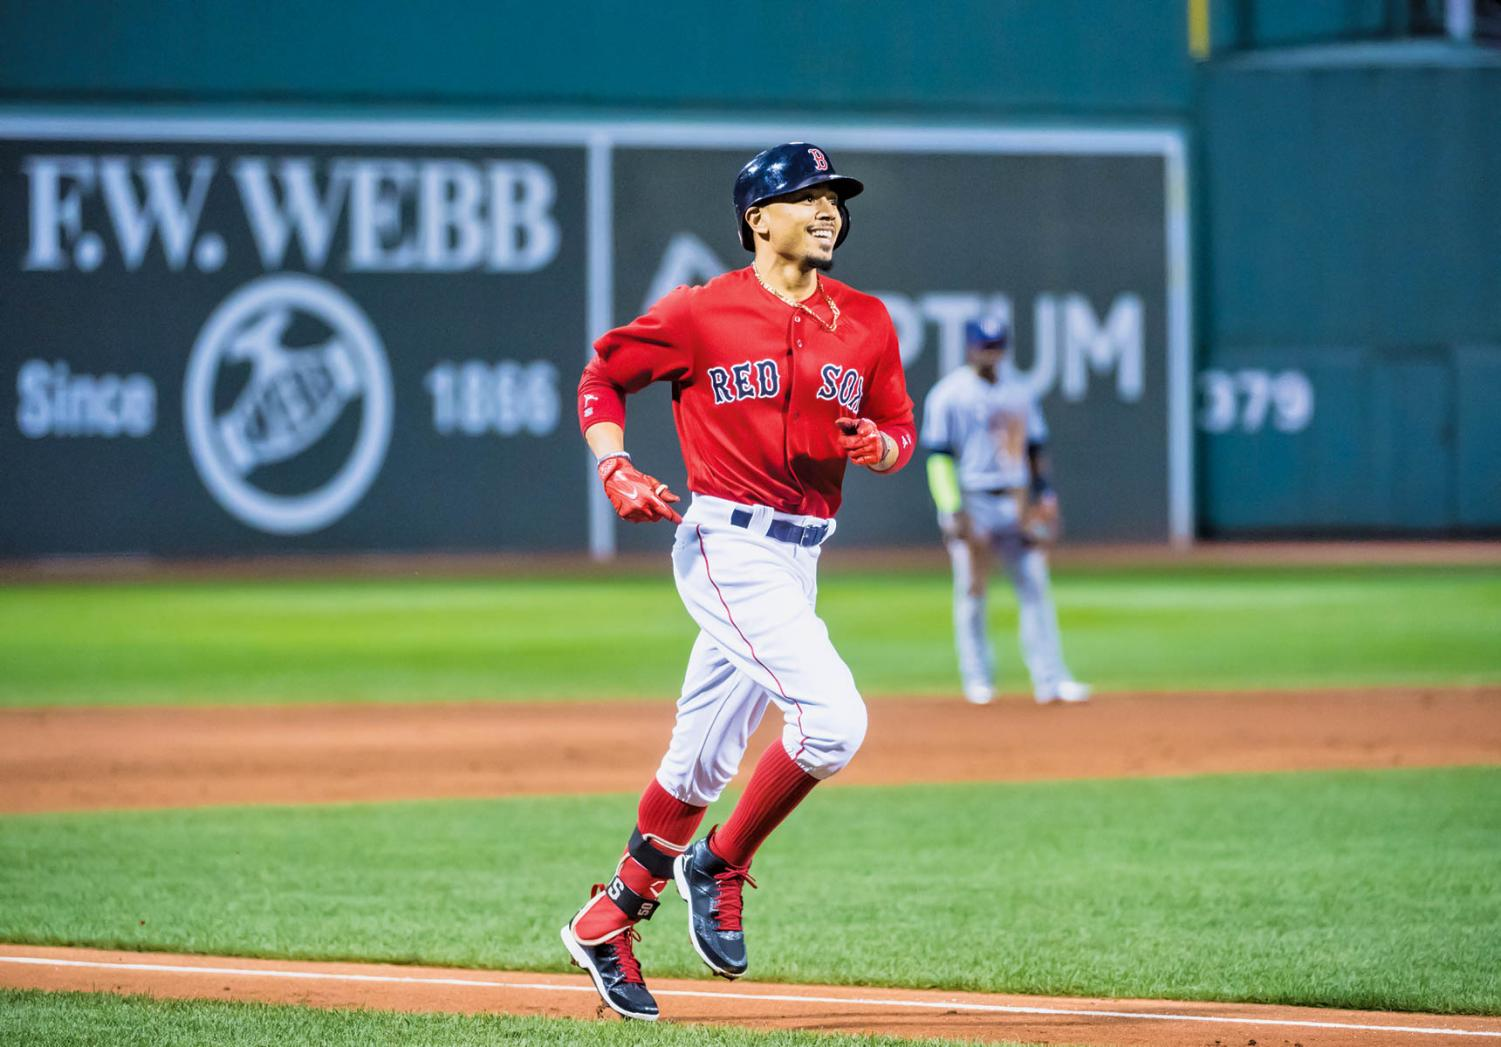 Mookie Betts leads the Red Sox to the World Series for first time since 2013.